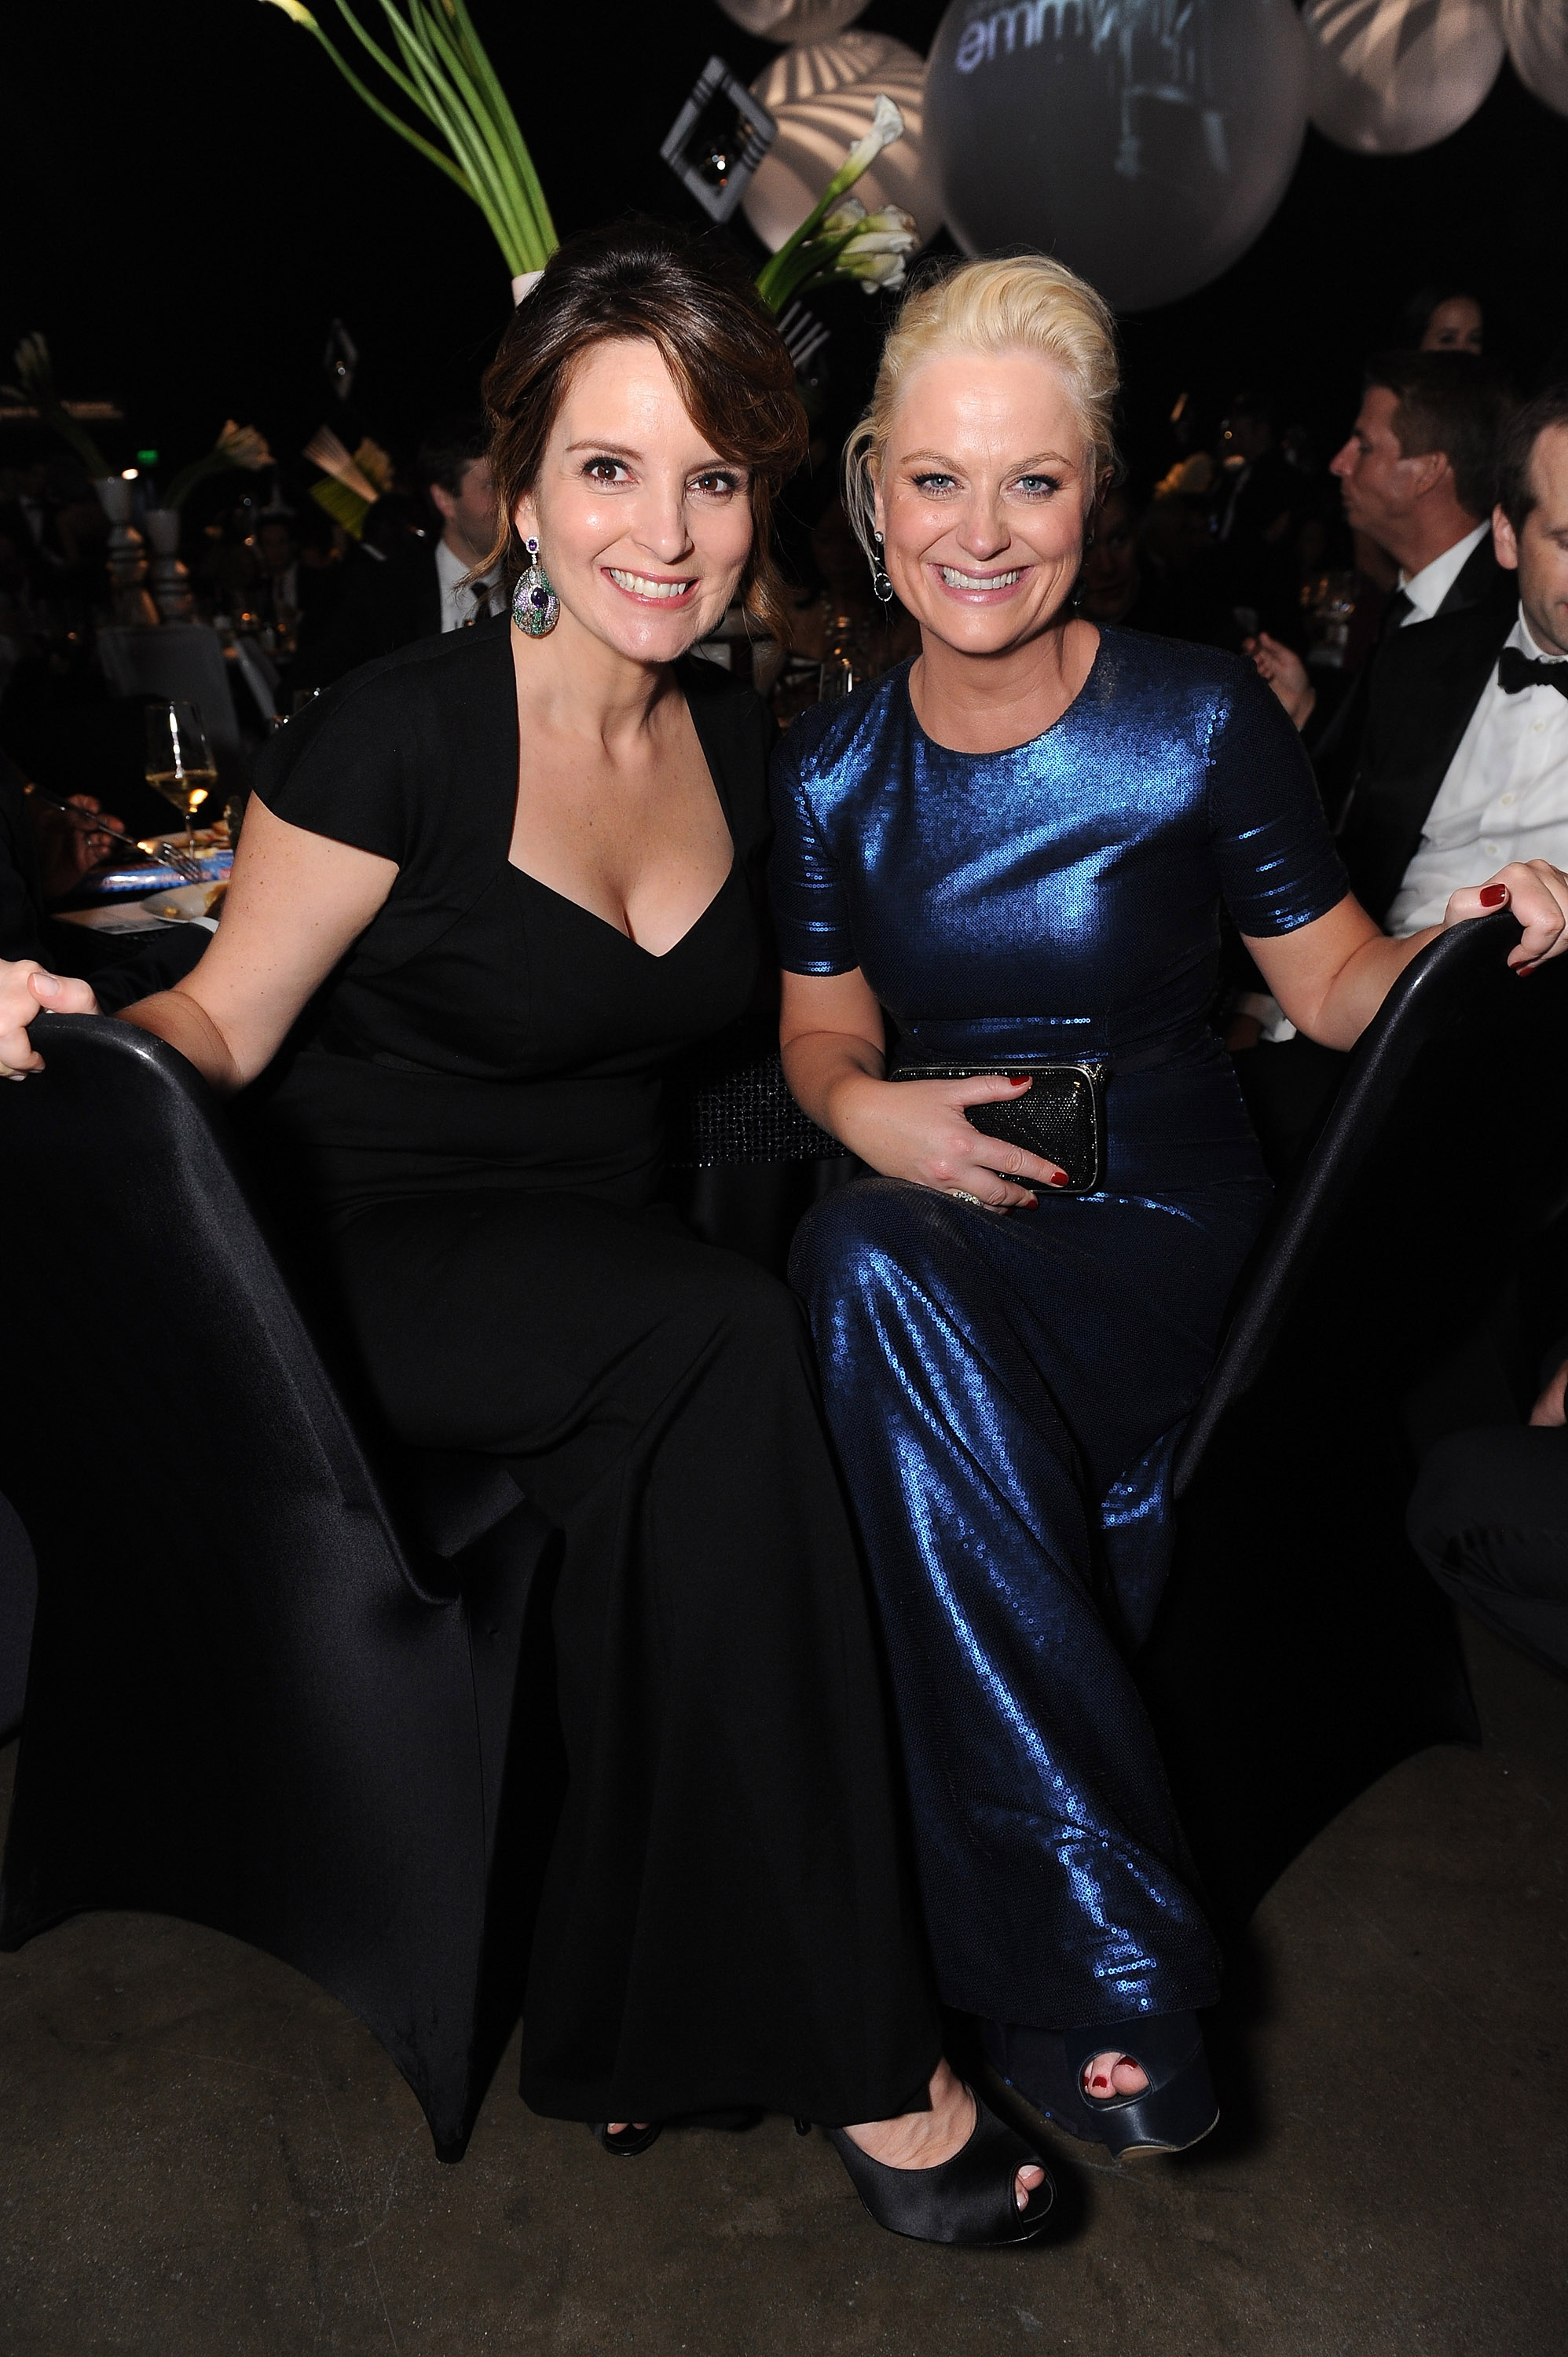 Tina Fey and Amy Poehler at the Emmy's Governor's Ball.